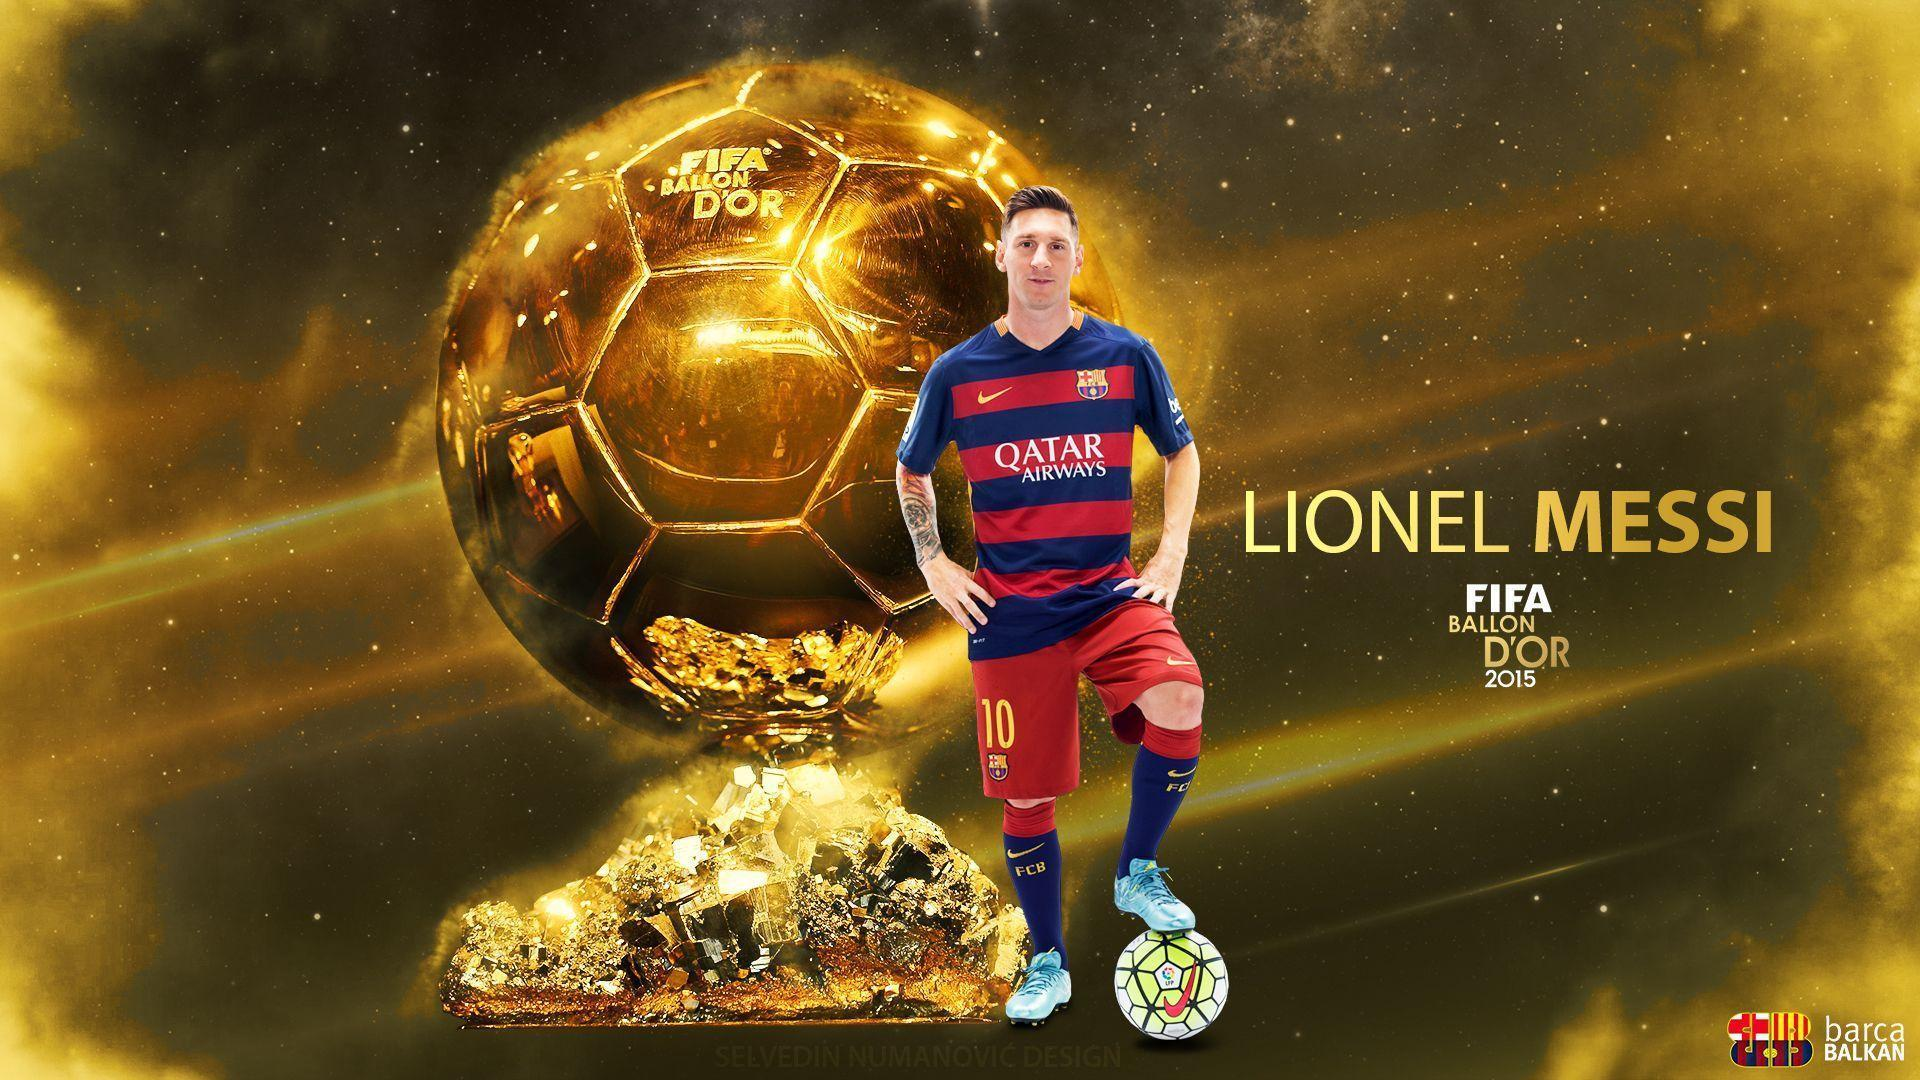 Lionel Messi 2016 Wallpapers Hd 1080p Wallpaper Cave